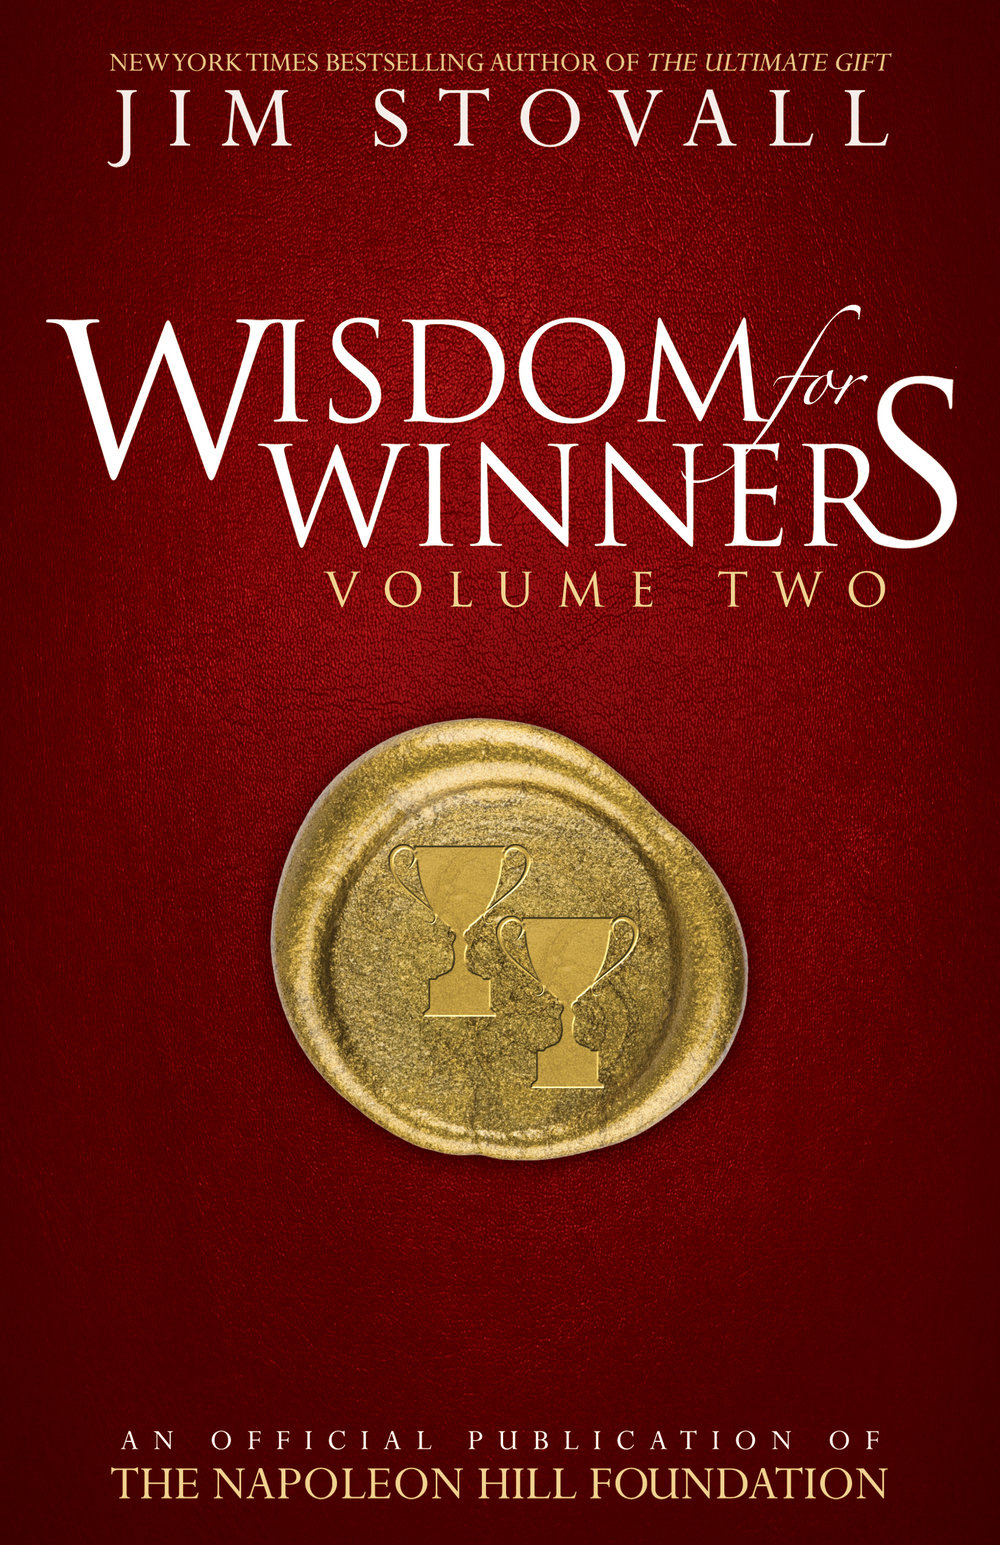 Wisdom for Winners Volume Two - By jim stovall